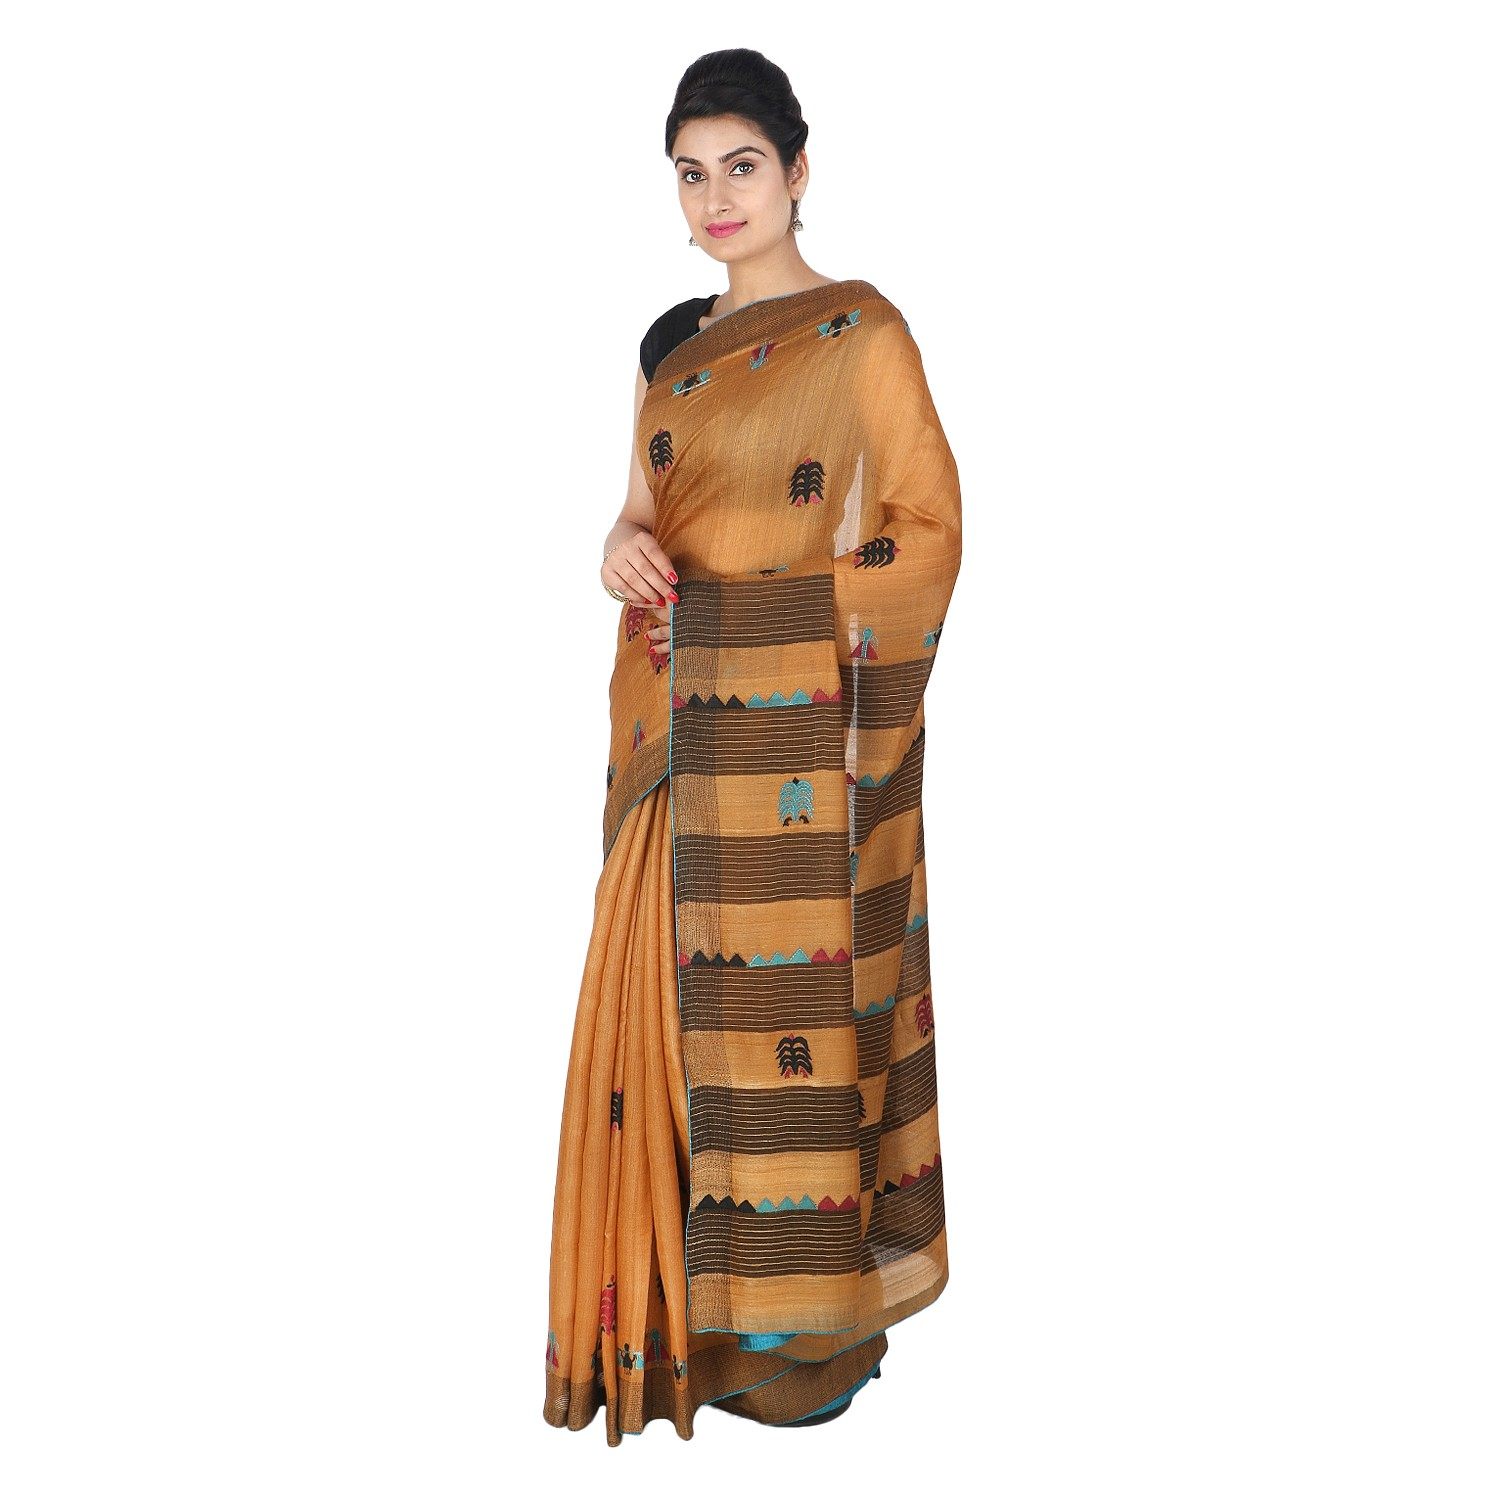 Handmade Orange Tussar Silk Patch Work Saree by Weavers of Bihar